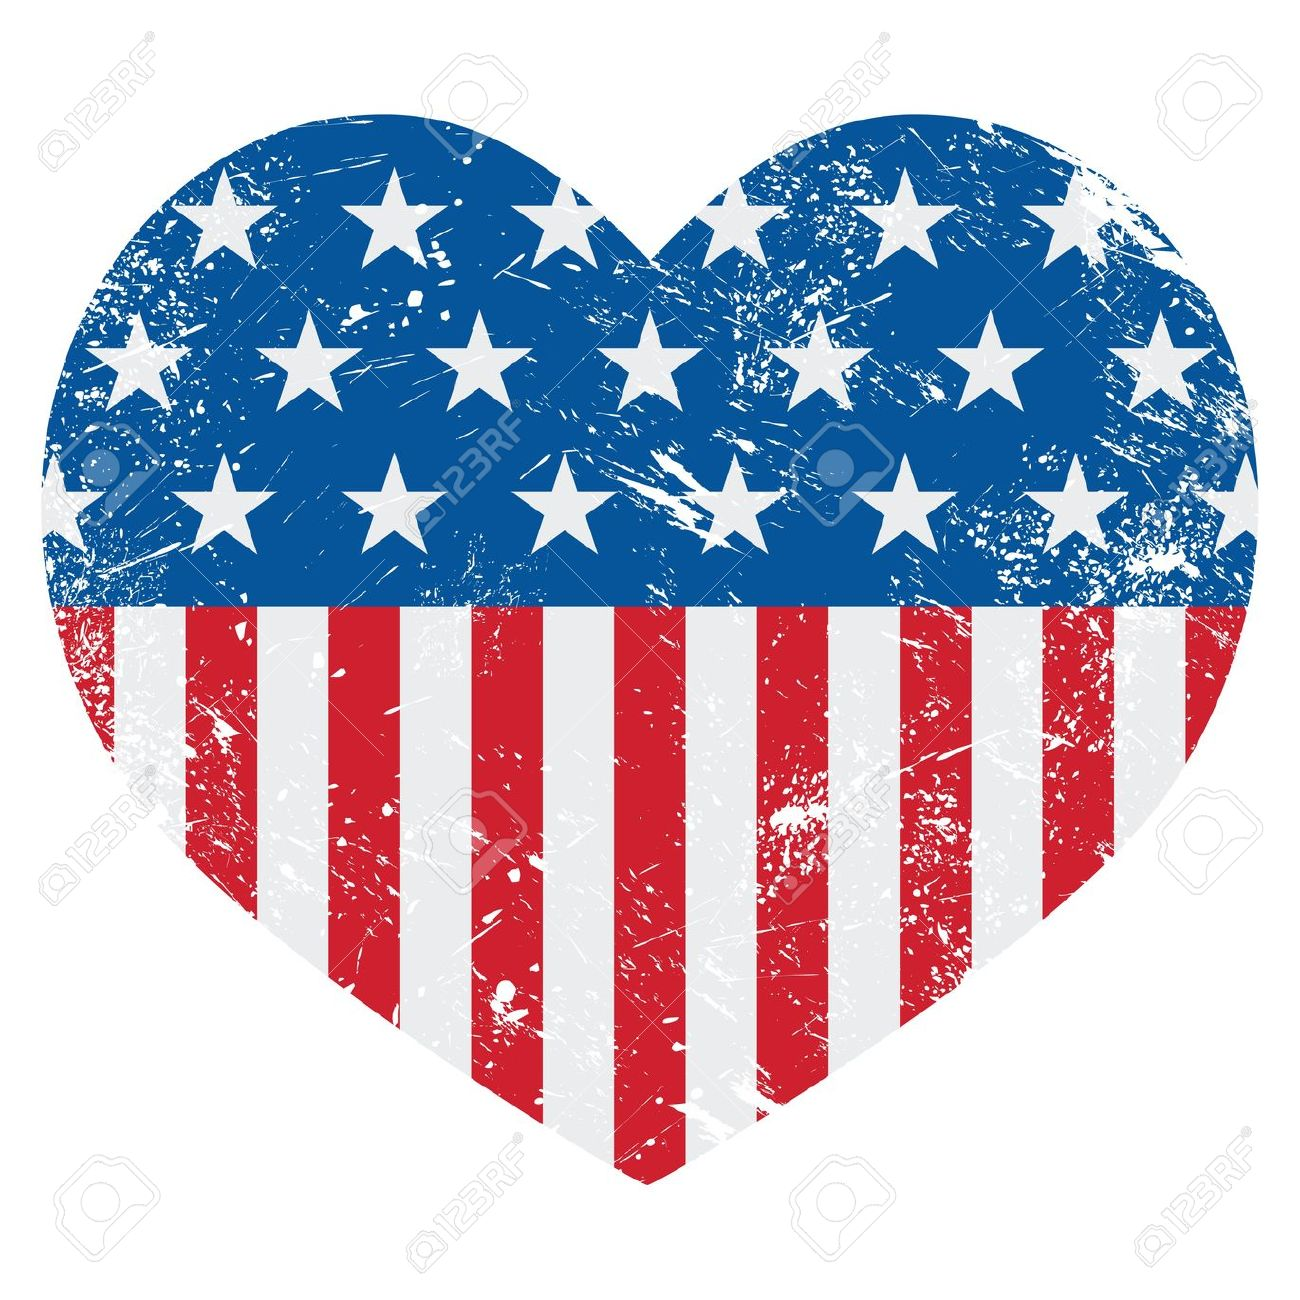 Us flag heart clipart banner free stock Us flag heart vector clipart - ClipartFest banner free stock